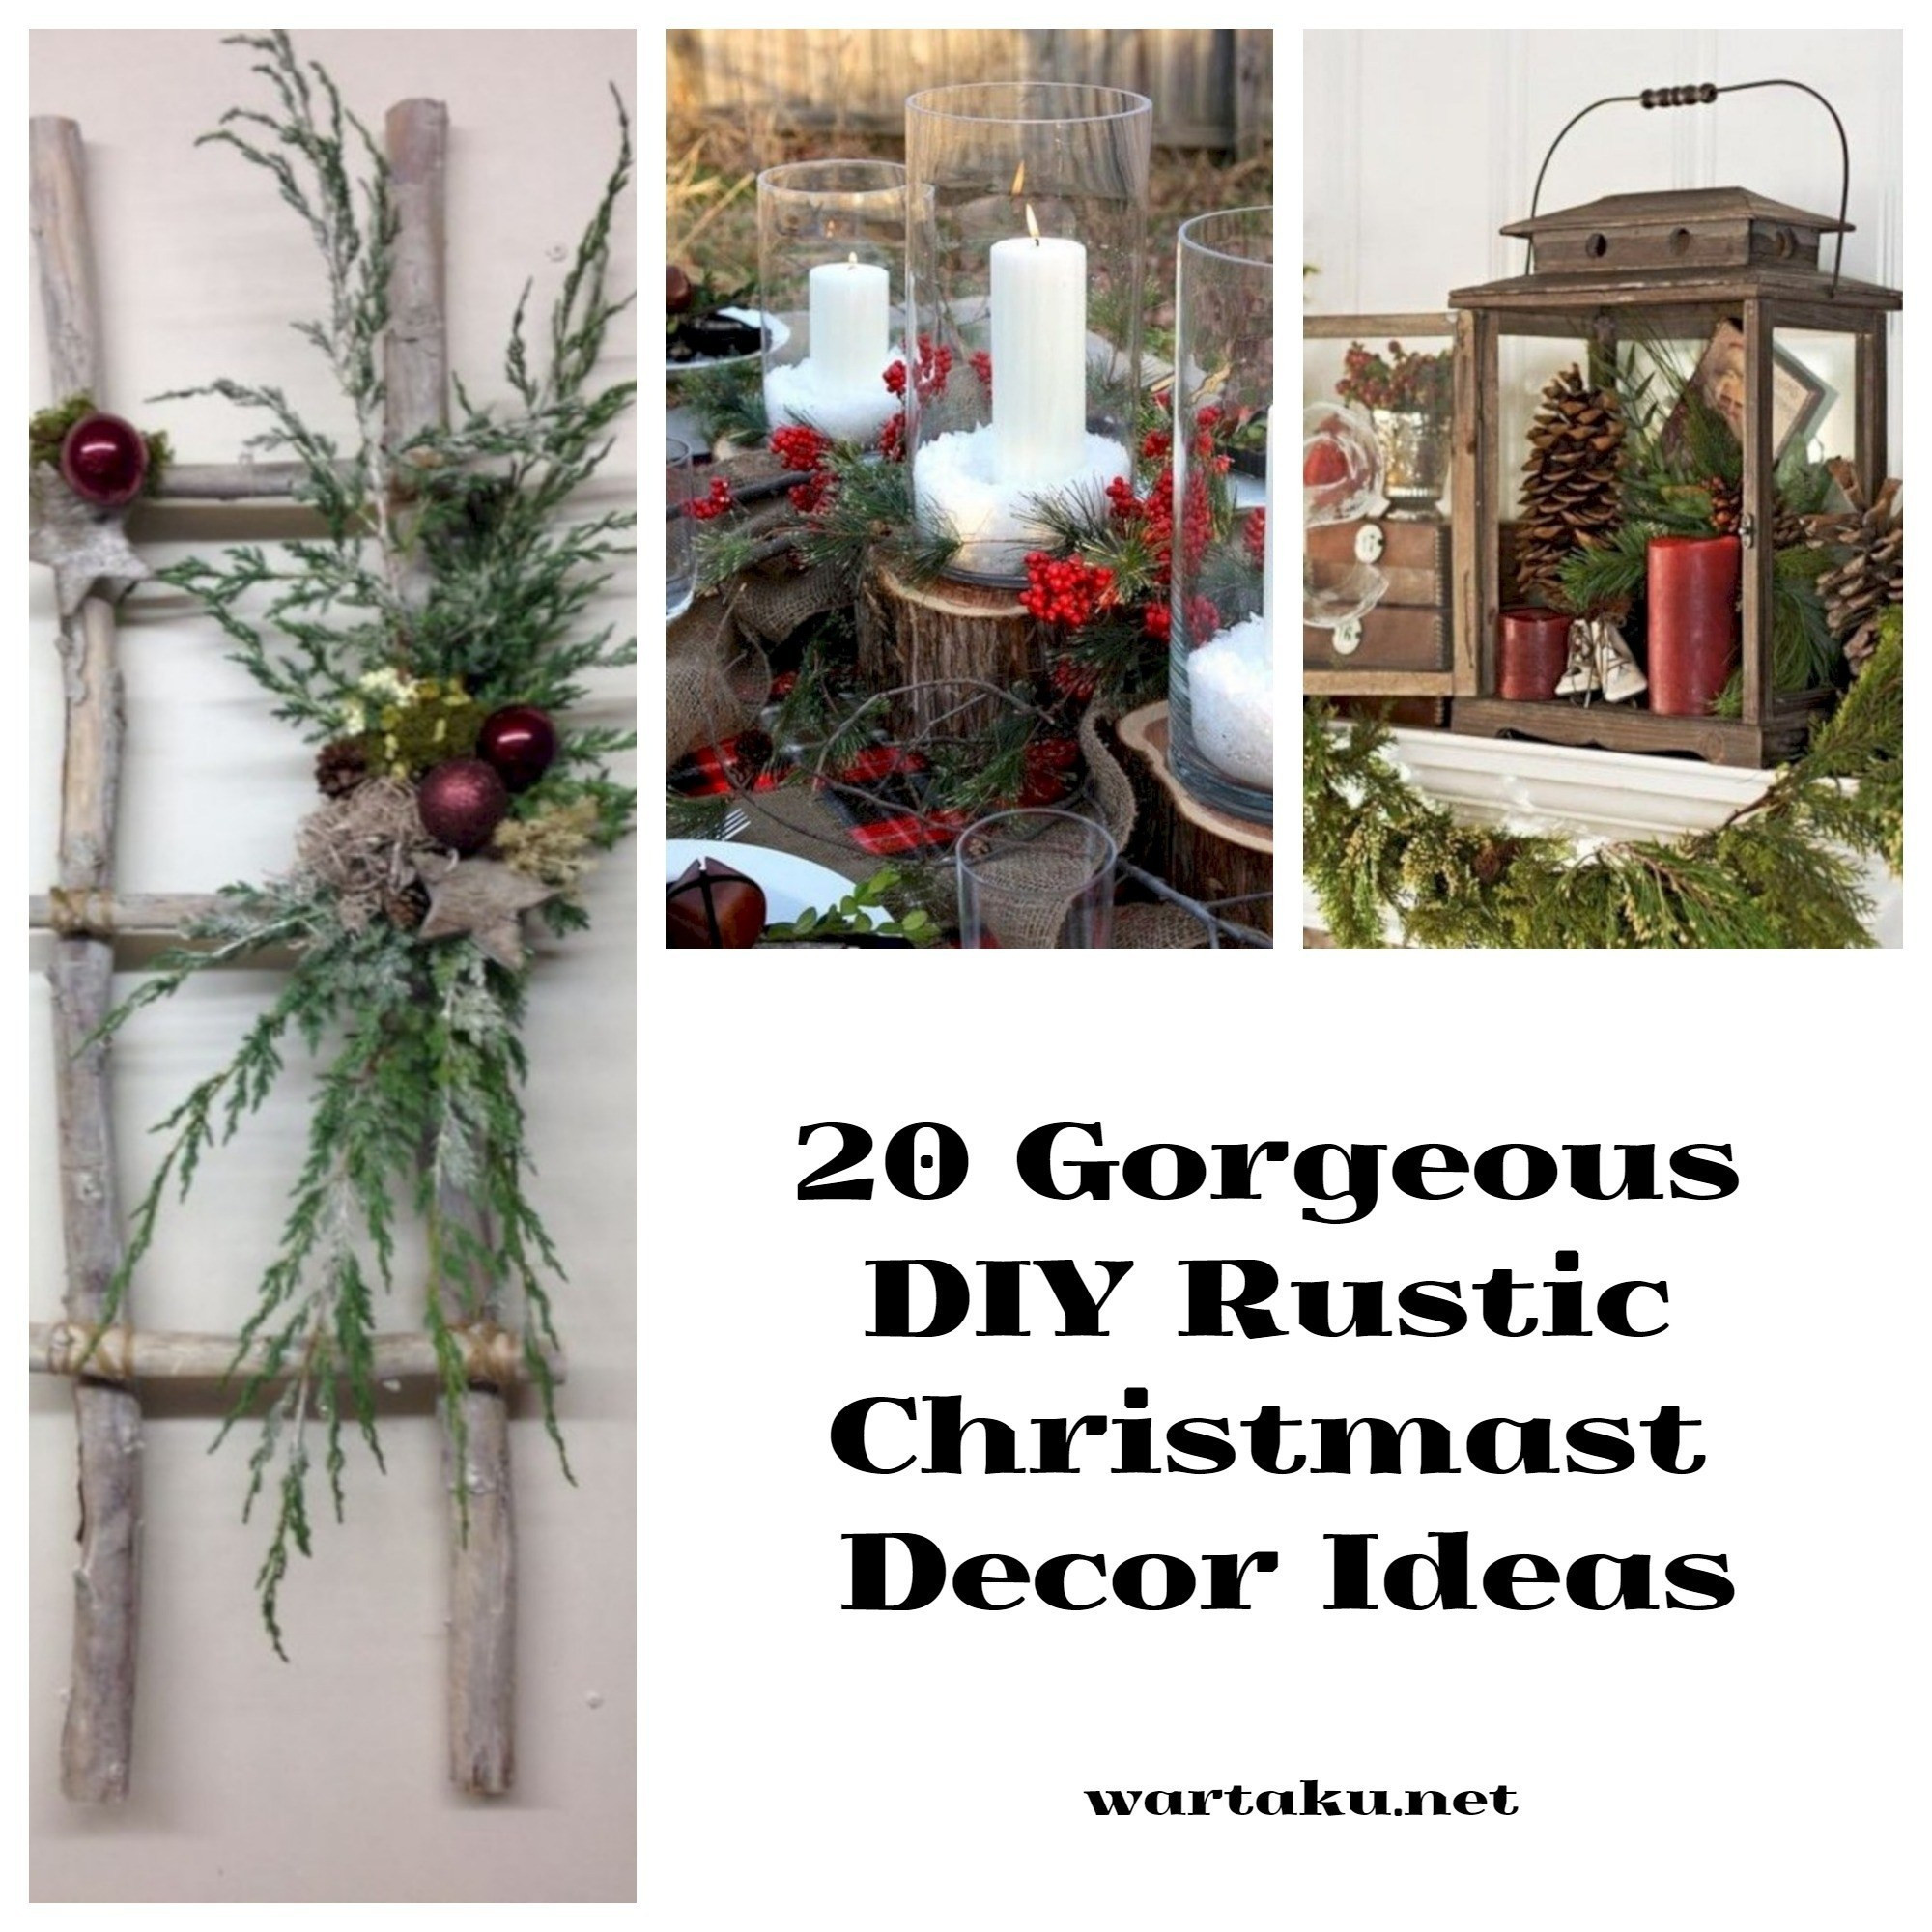 DIY Rustic Christmas Decorations  20 Gorgeous DIY Rustic Christmas Decor Ideas Wartaku